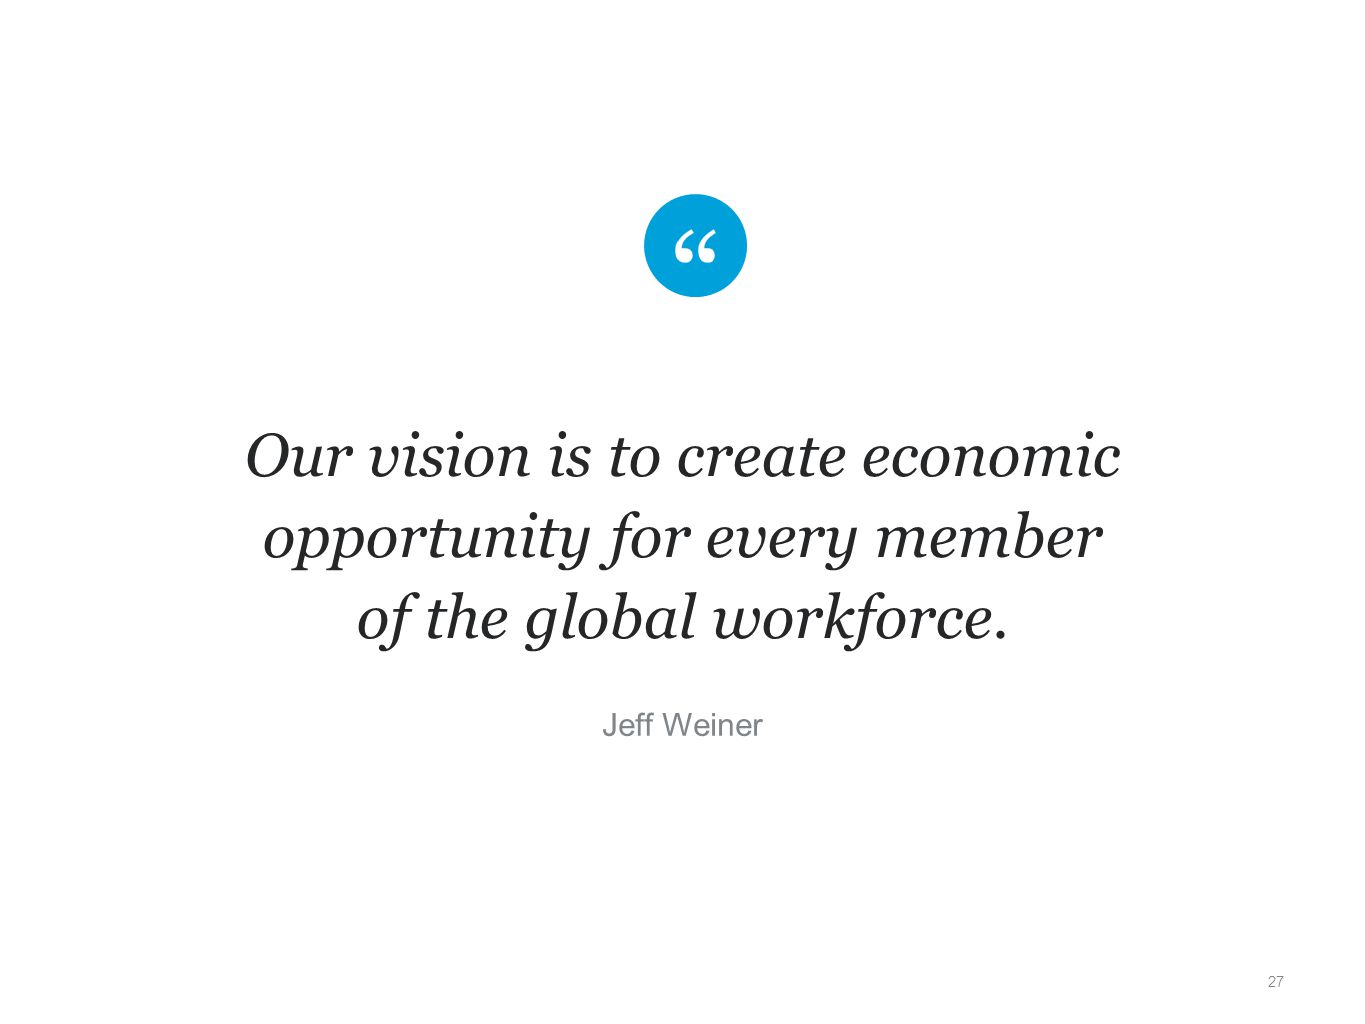 Our vision is to create economic opportunity for every member of the global workforce.